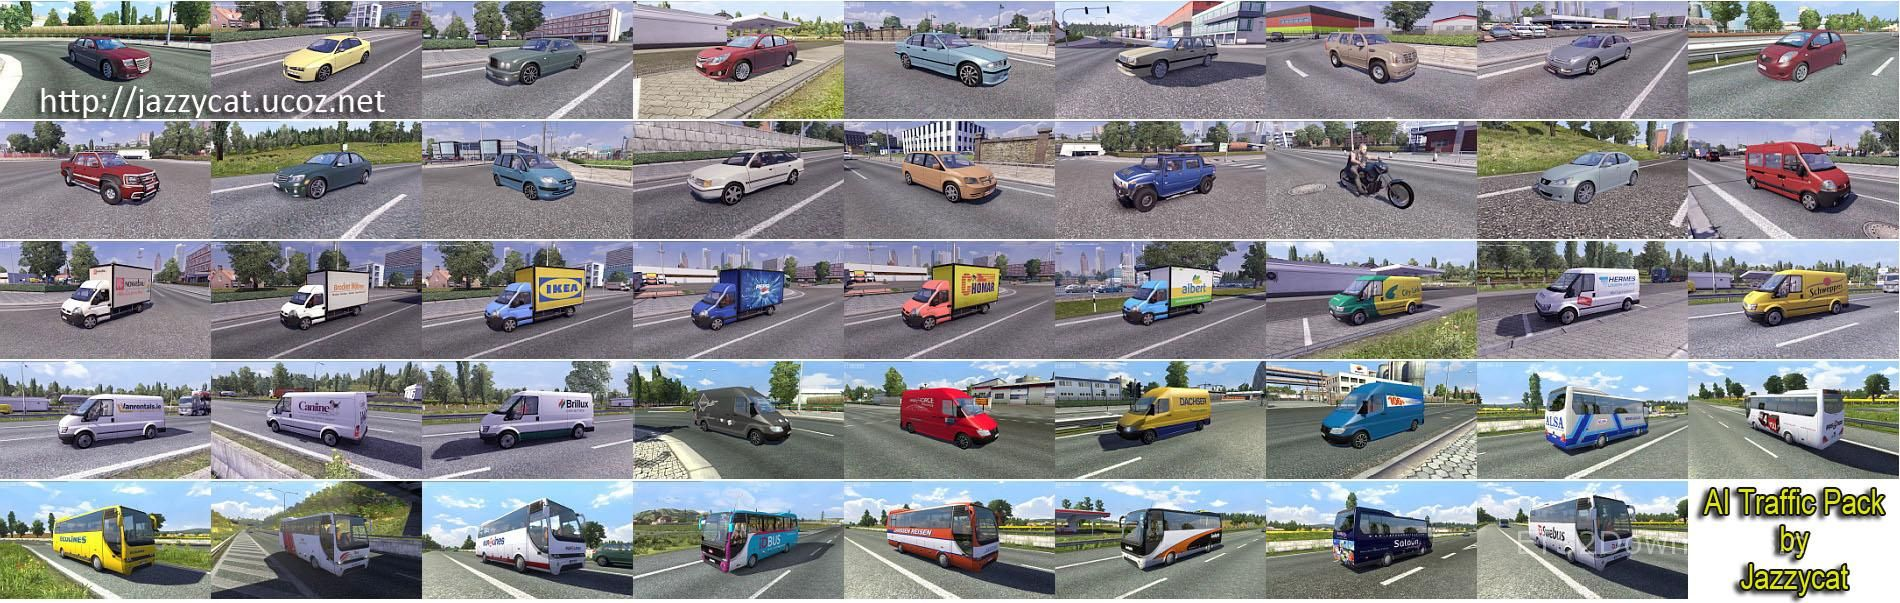 AI Traffic Pack by Jazzycat v7 5 - ETS2 Mods